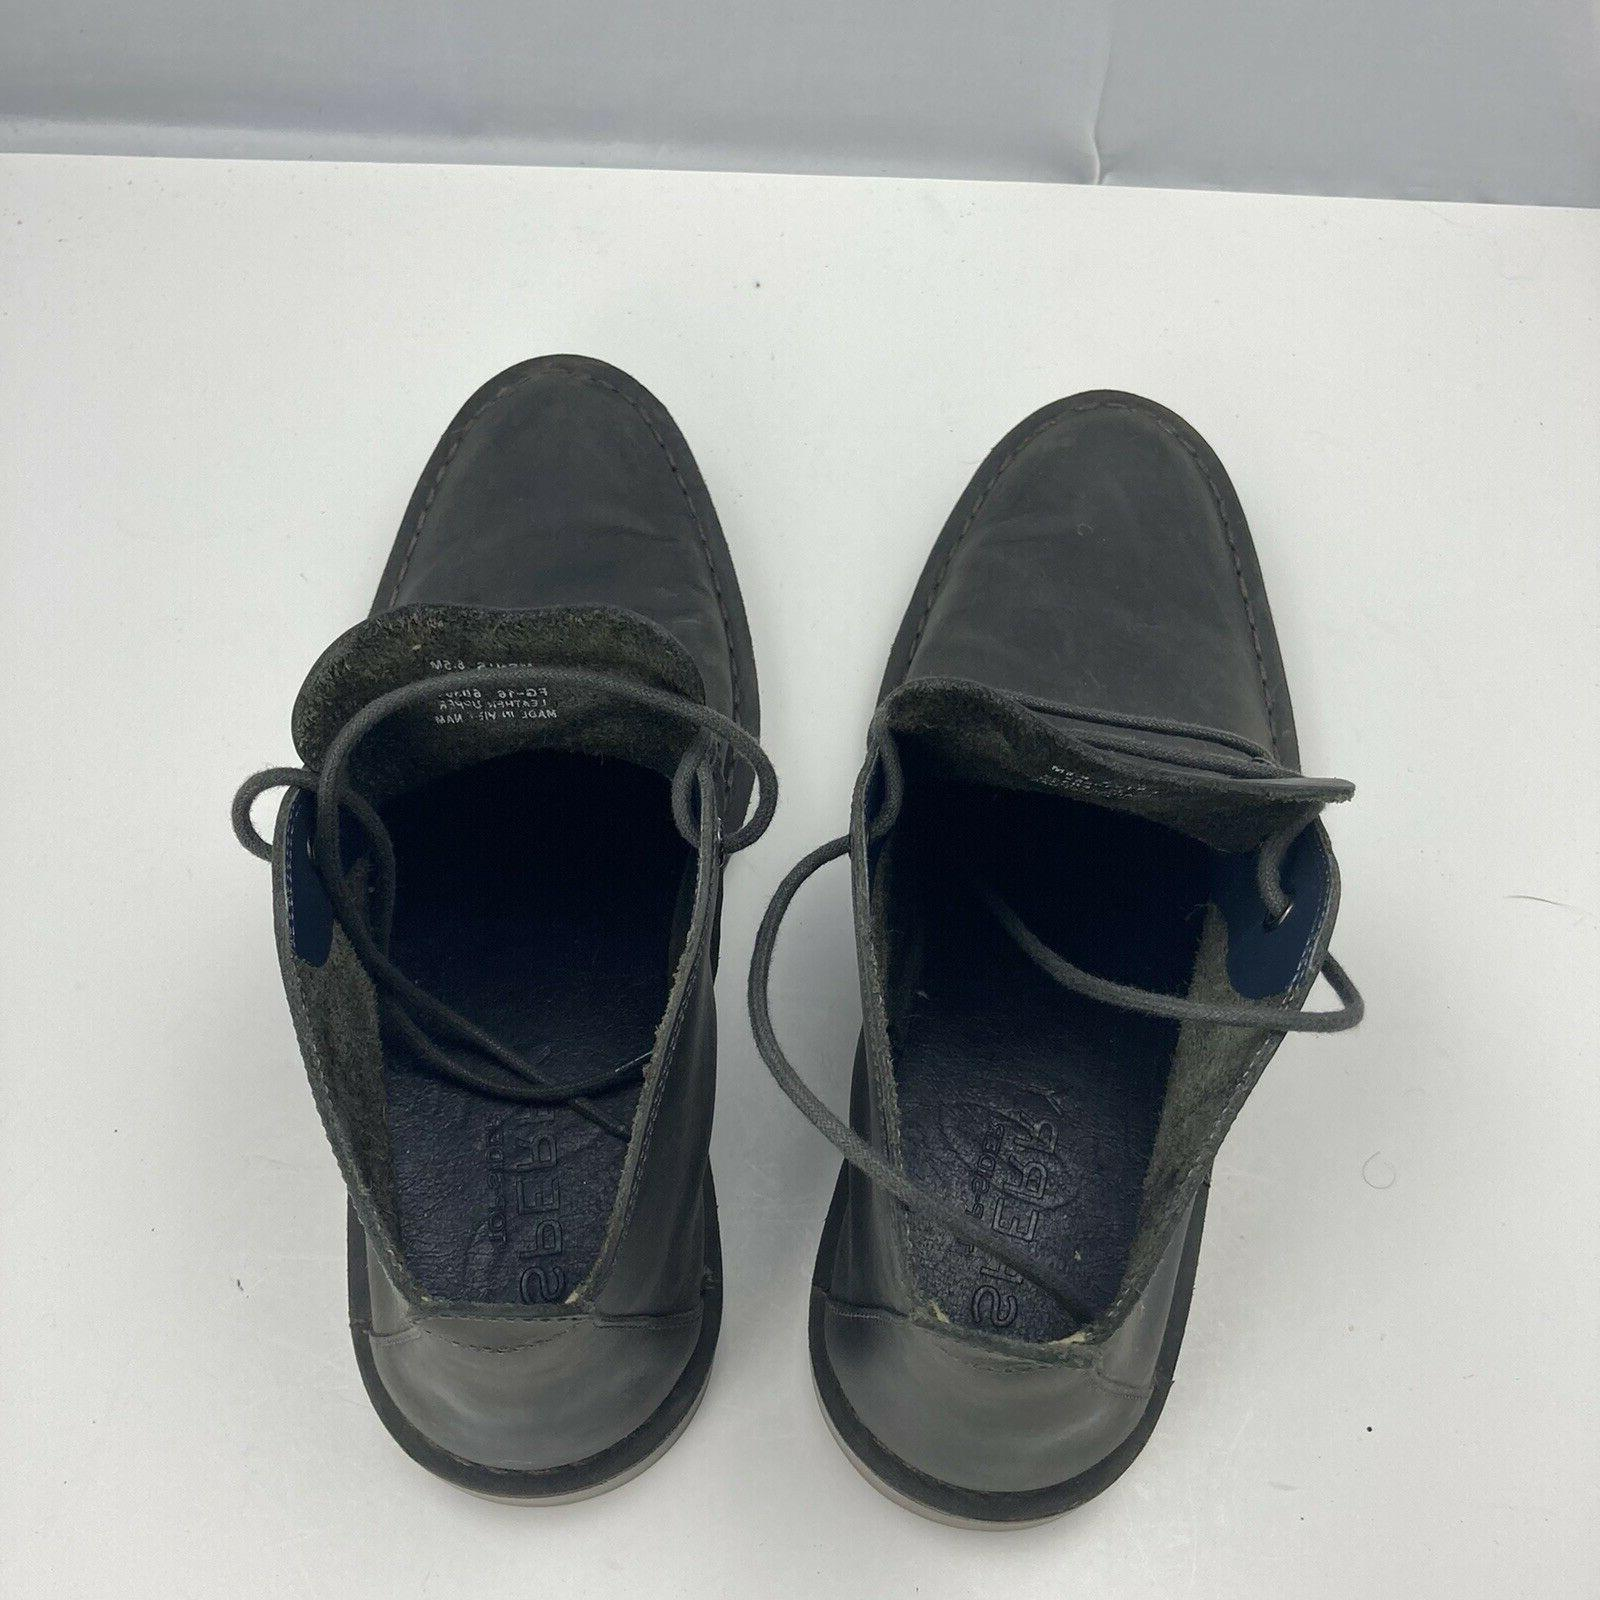 SPERRY Top Chukka Boots Aged Lace Ankle Mens